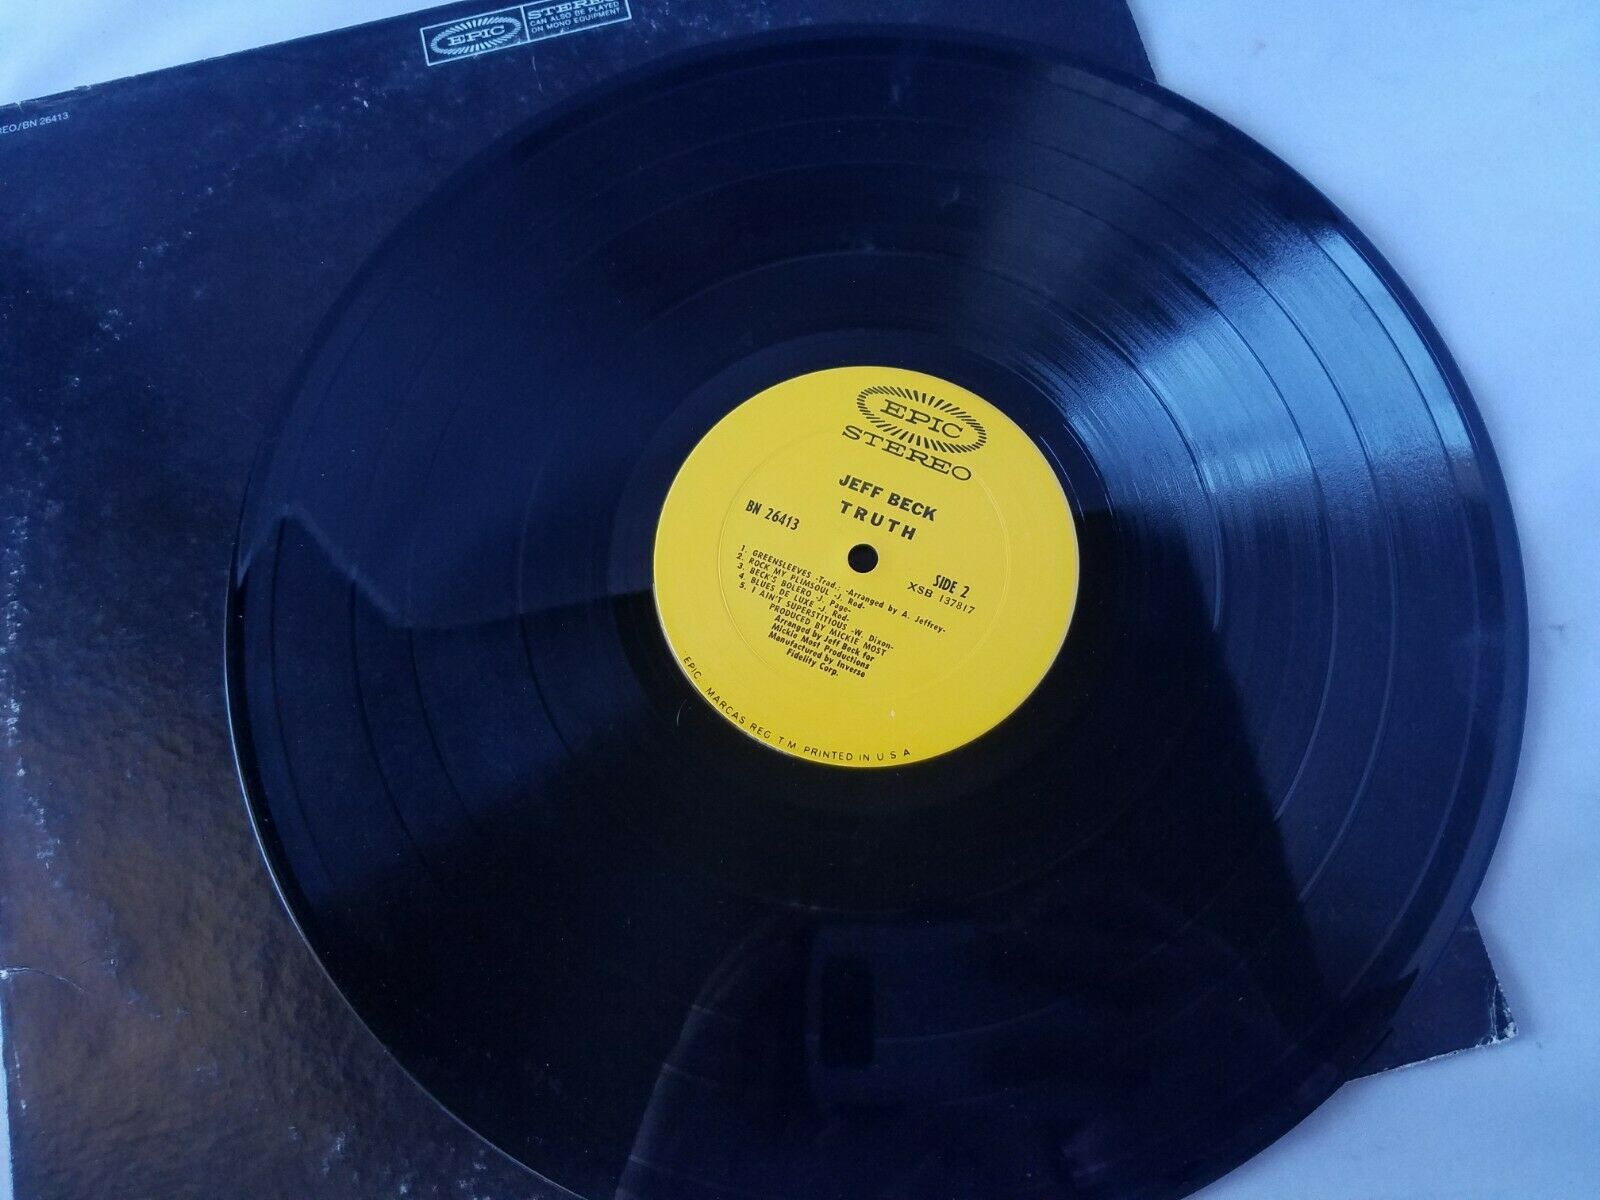 Jeff Beck Truth Vinyl Record Vintage 1973 Epic Stereo BN-26413